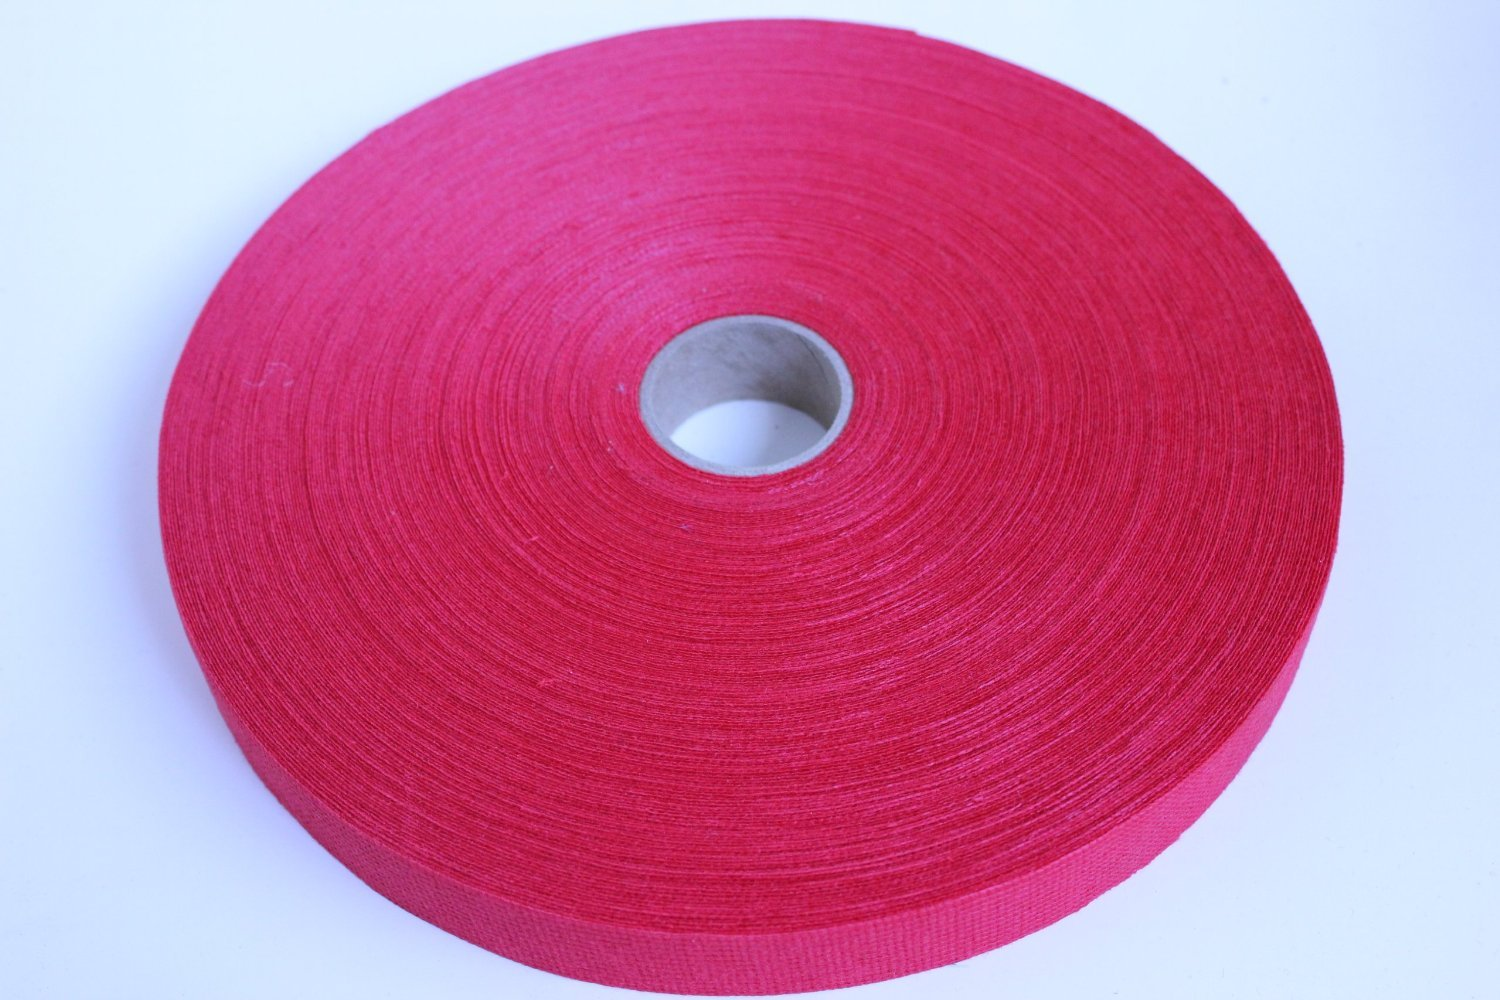 Red (860) Binding Tape (2 rolls) by Bond Products Inc